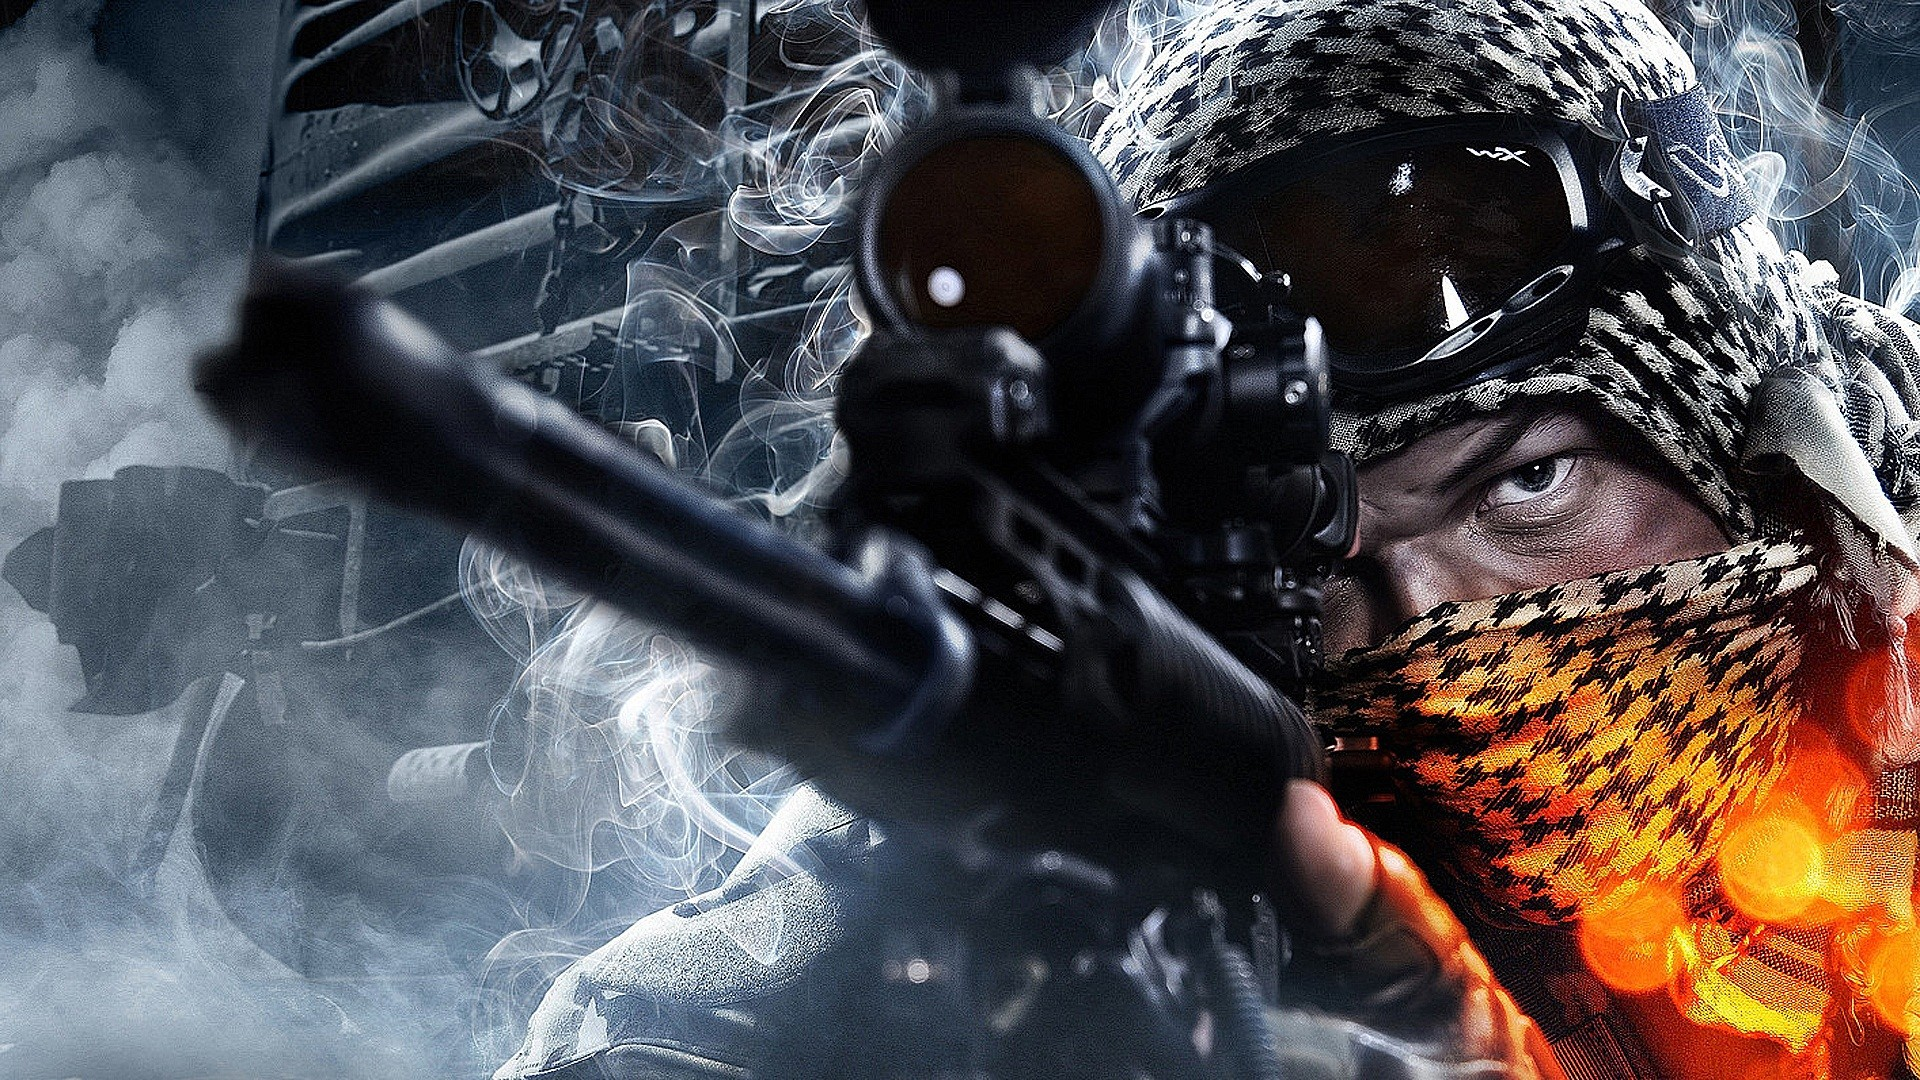 1920x1080 rsz_bf4-hd-wallpaper-sniper